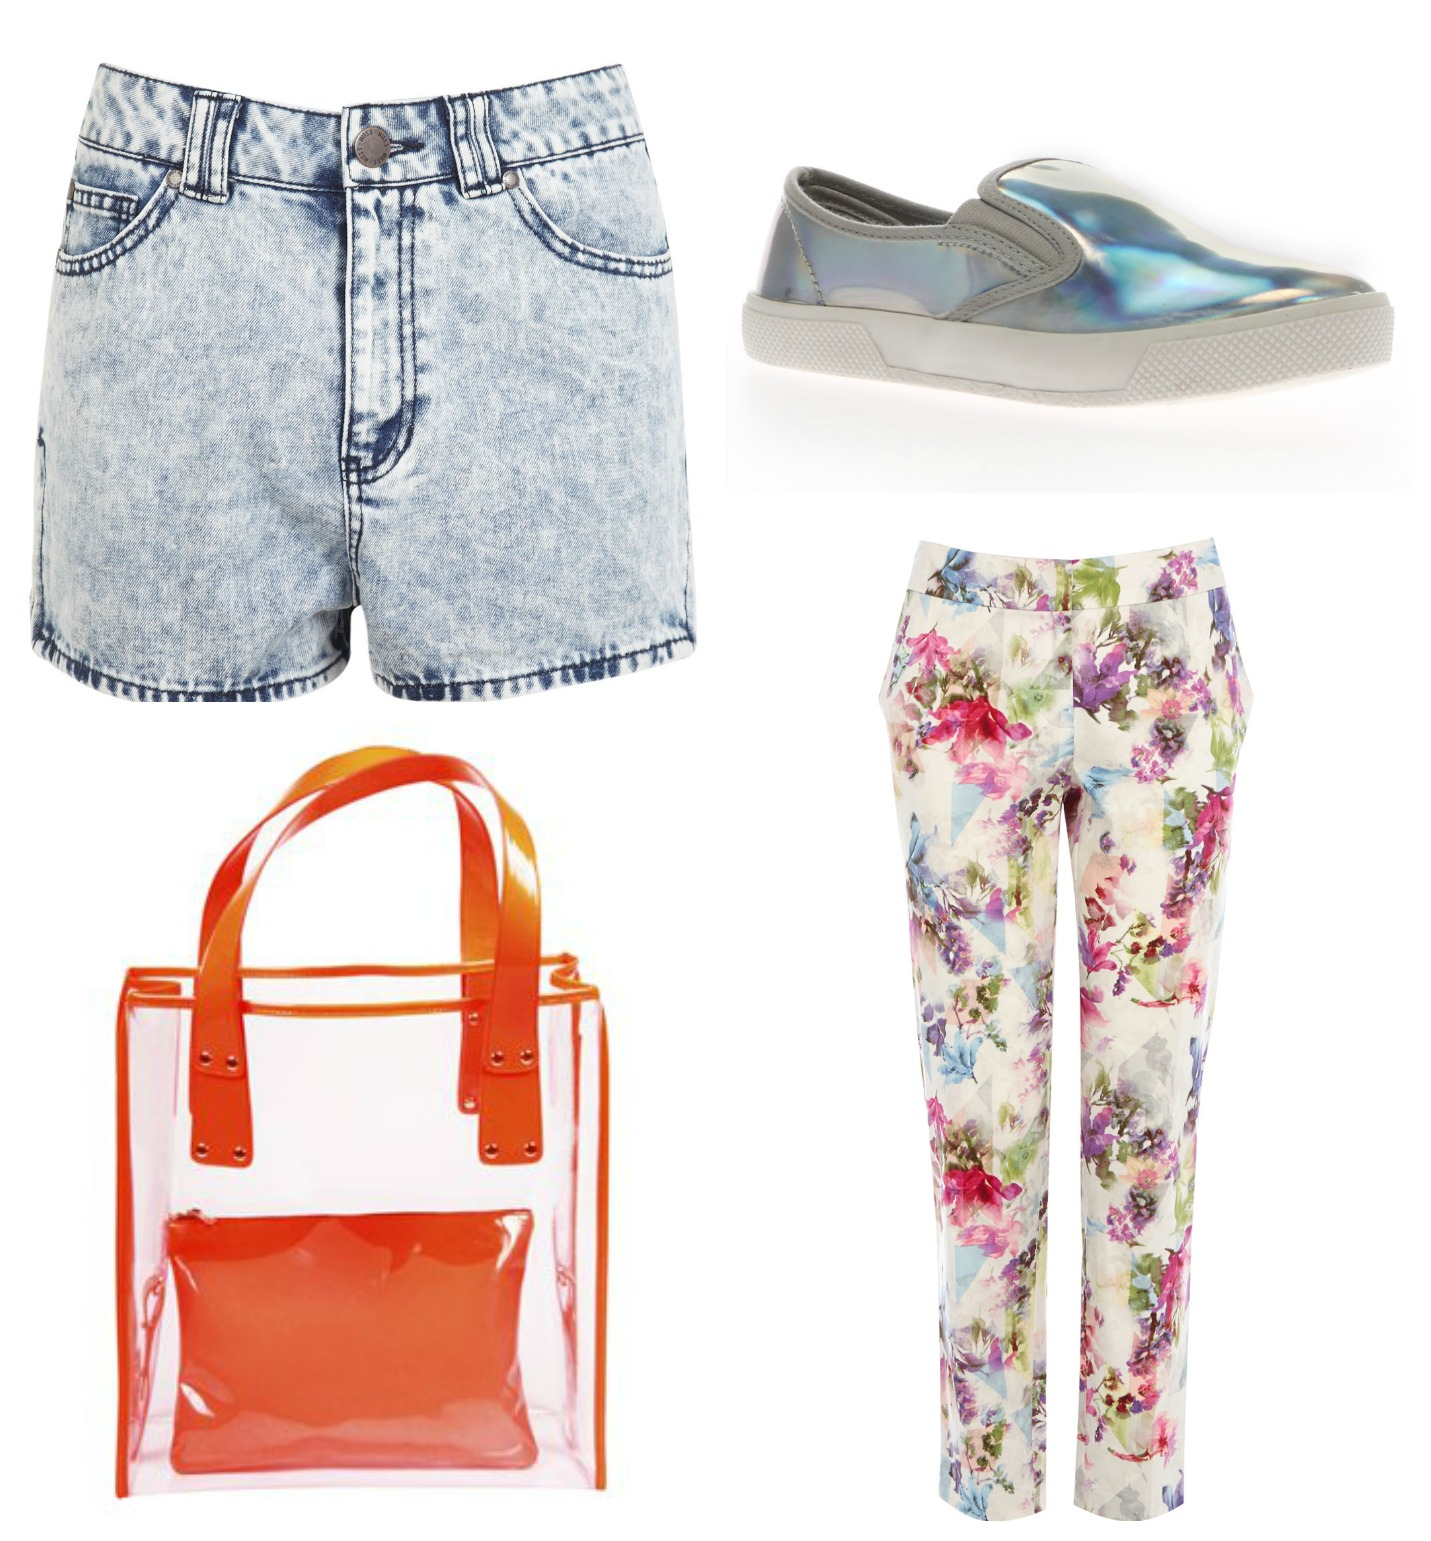 The Summer edit: acid wash shorts miss selfridge holographic slip on shoes public desire floral print trousers warehouse transparent neon orange tote bag pret a portobello